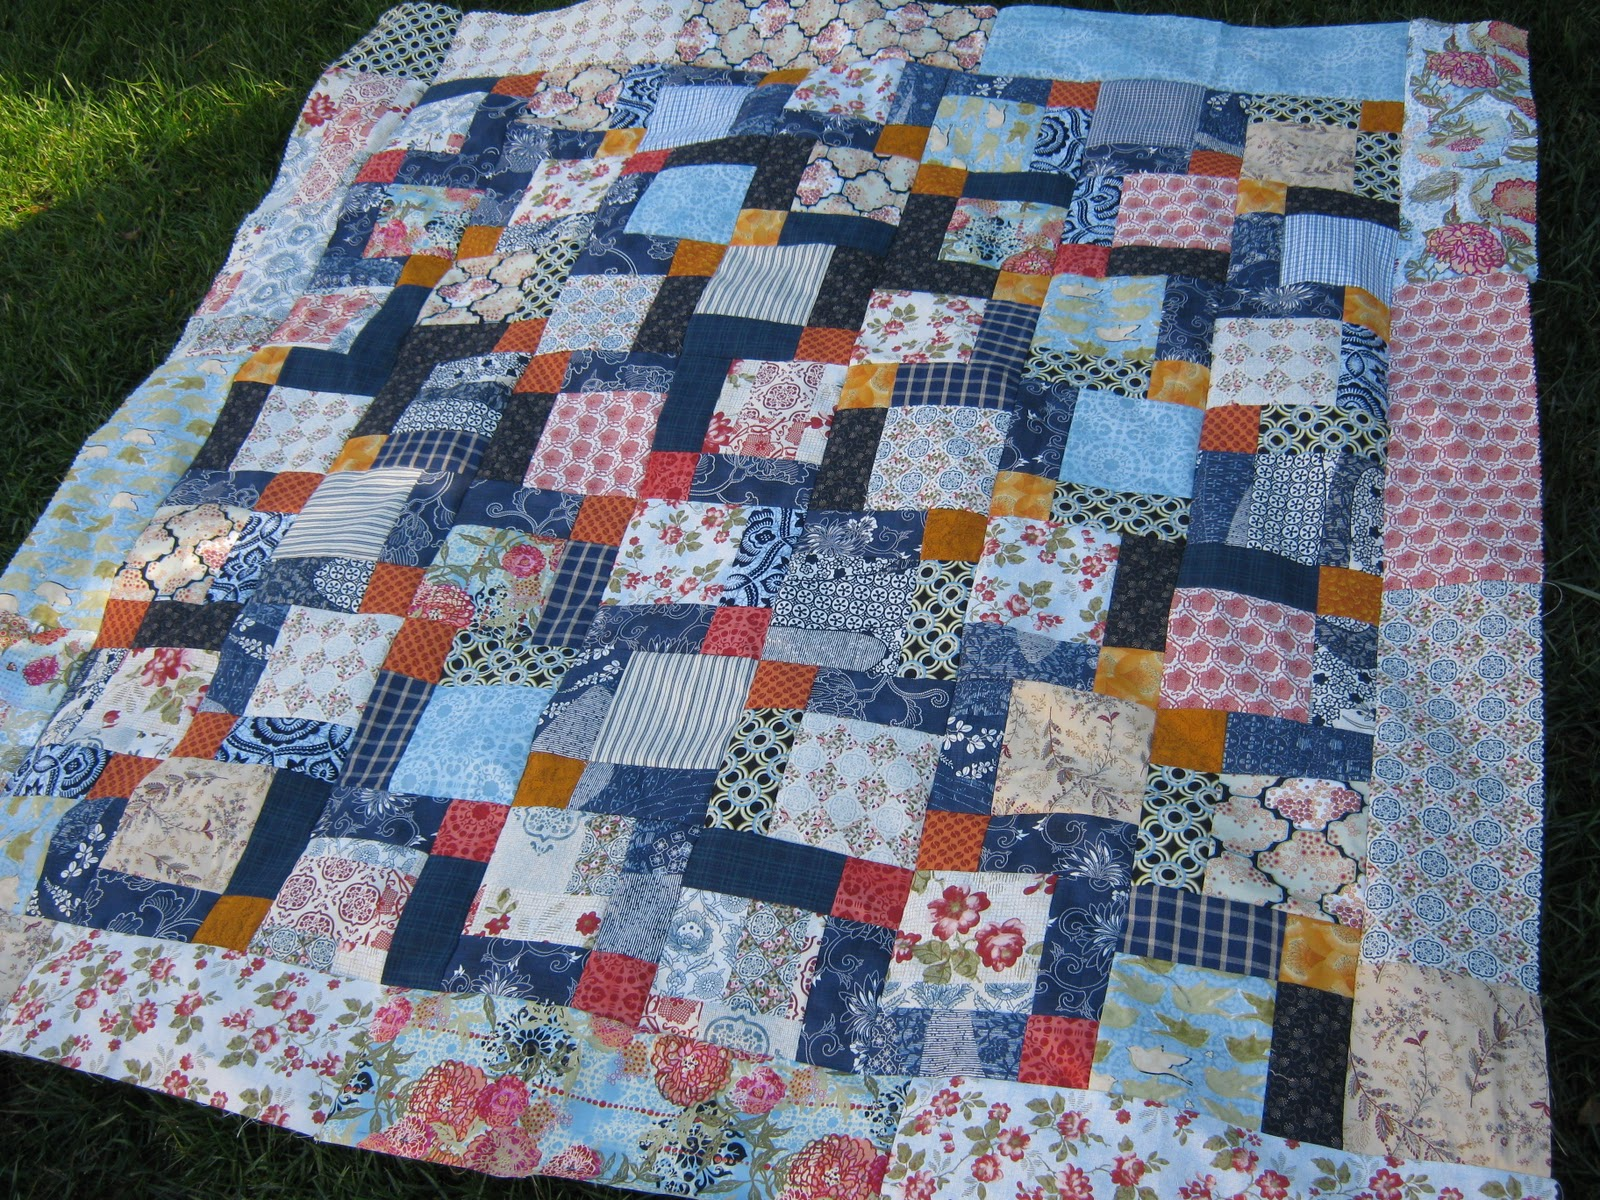 Free quilt craft and sewing patterns links and tutorials with disappearing 9 patch jeuxipadfo Gallery